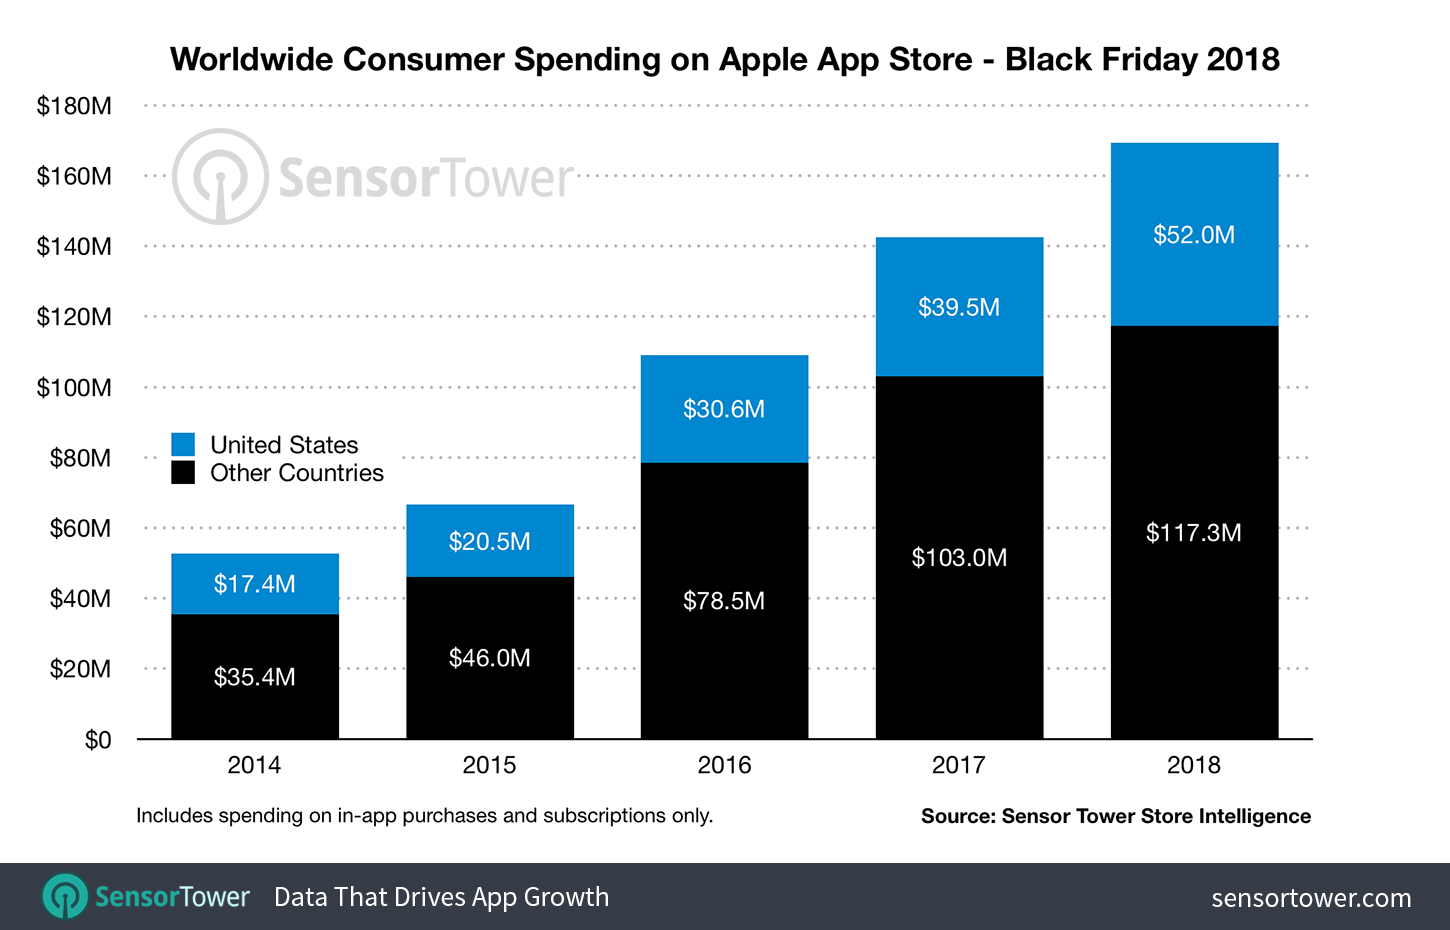 Worldwide and U.S. Black Friday Revenue on the App Store for 2014 through 2018